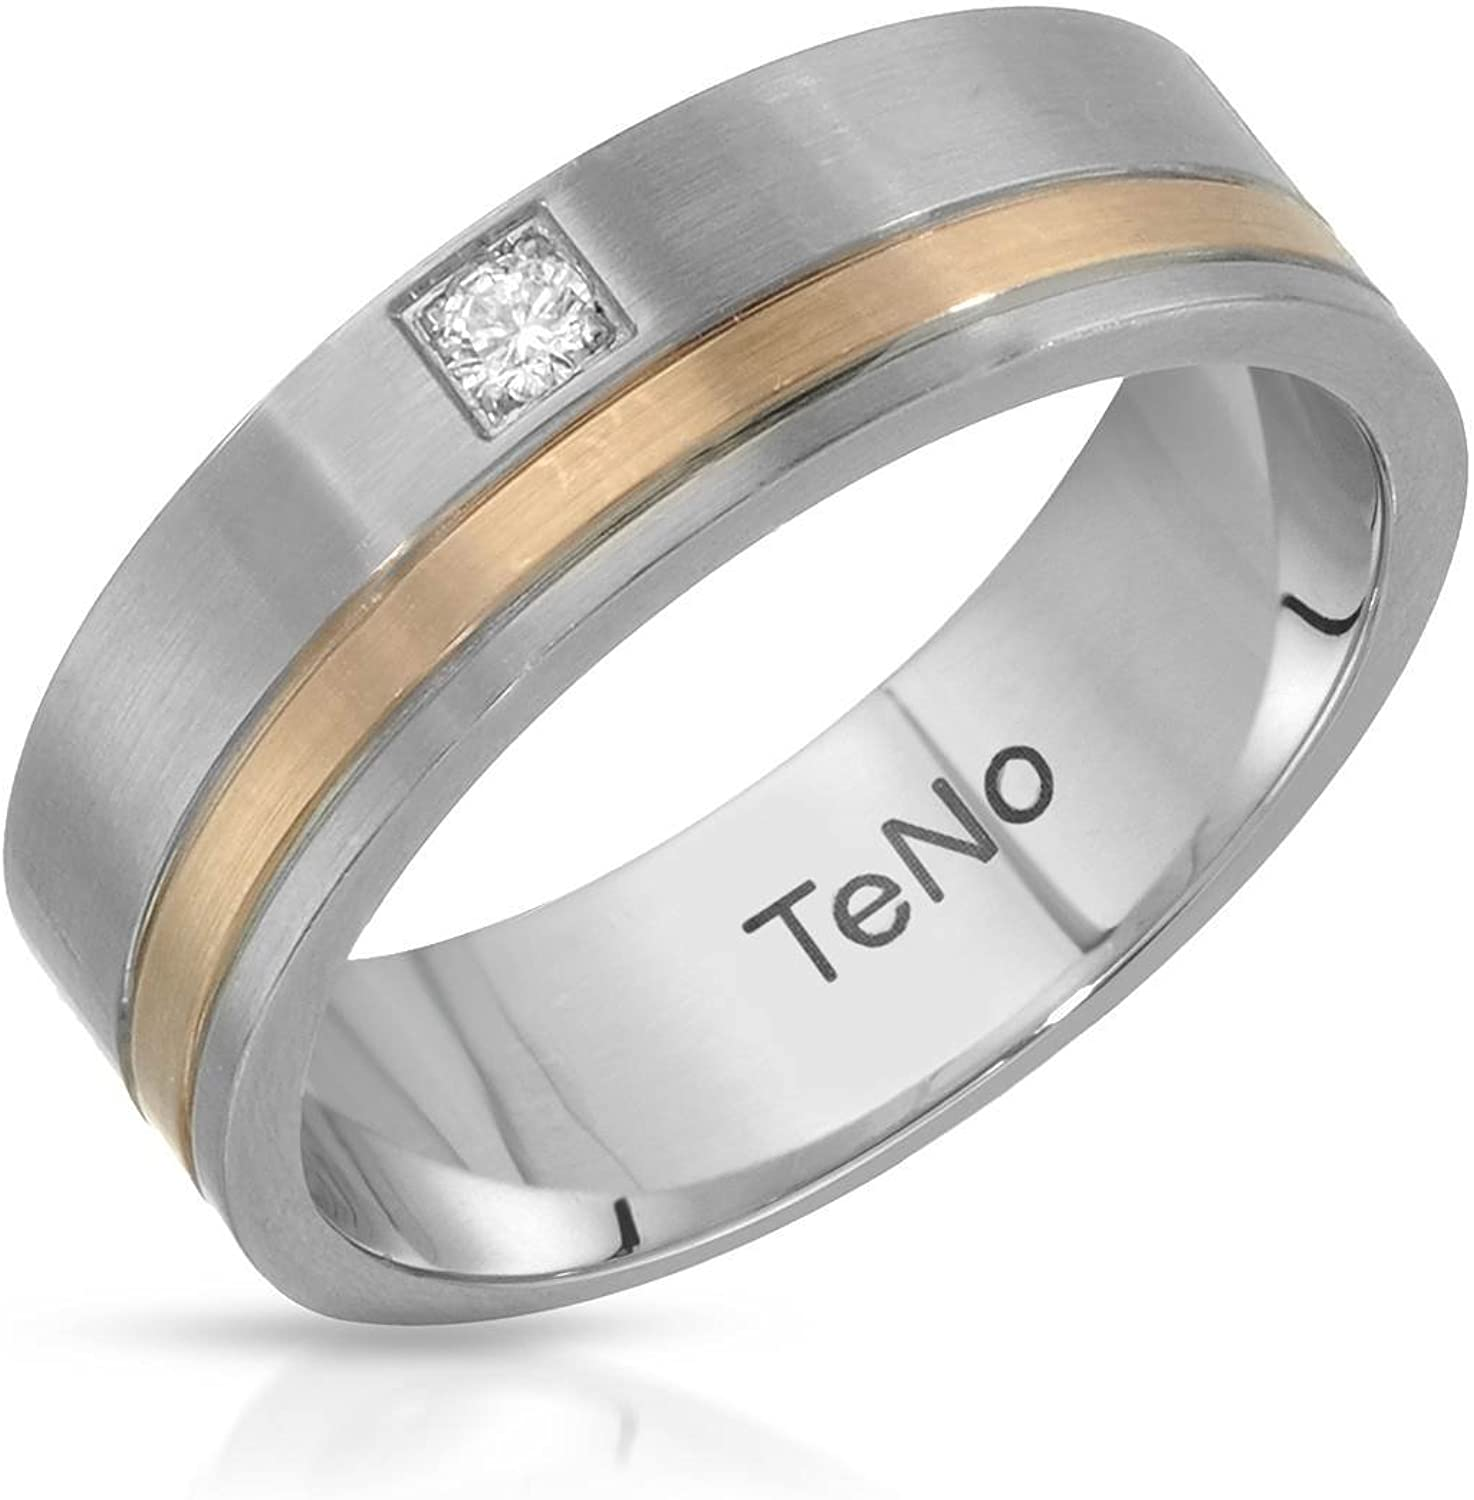 Teno Stainless Steel With Gold Inlay 0.04 CTW Color G, VS2 Diamond Band Ring.